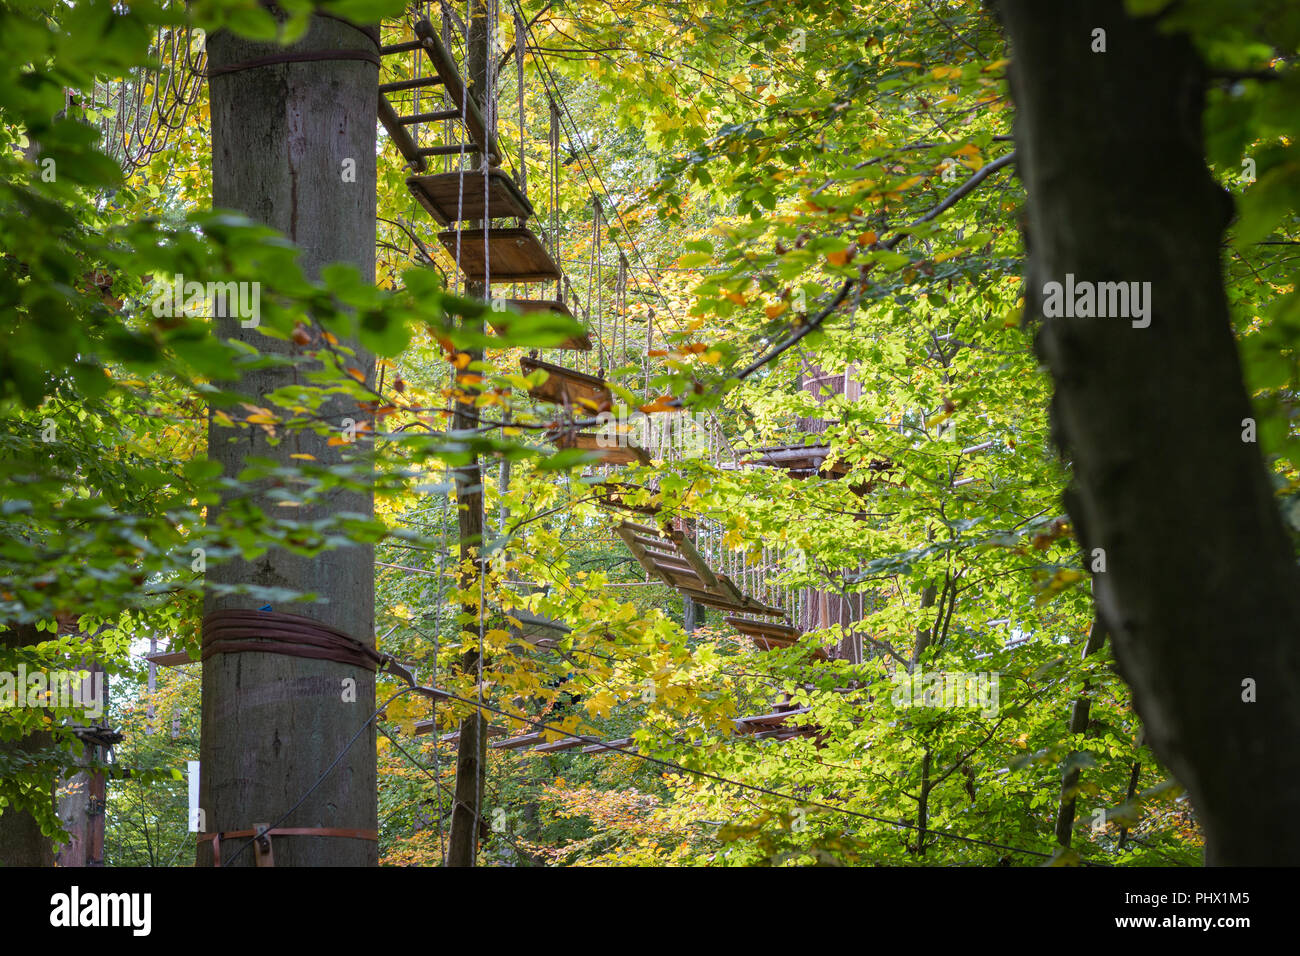 Rope bridge at adventure climbing park with natural background - Stock Image